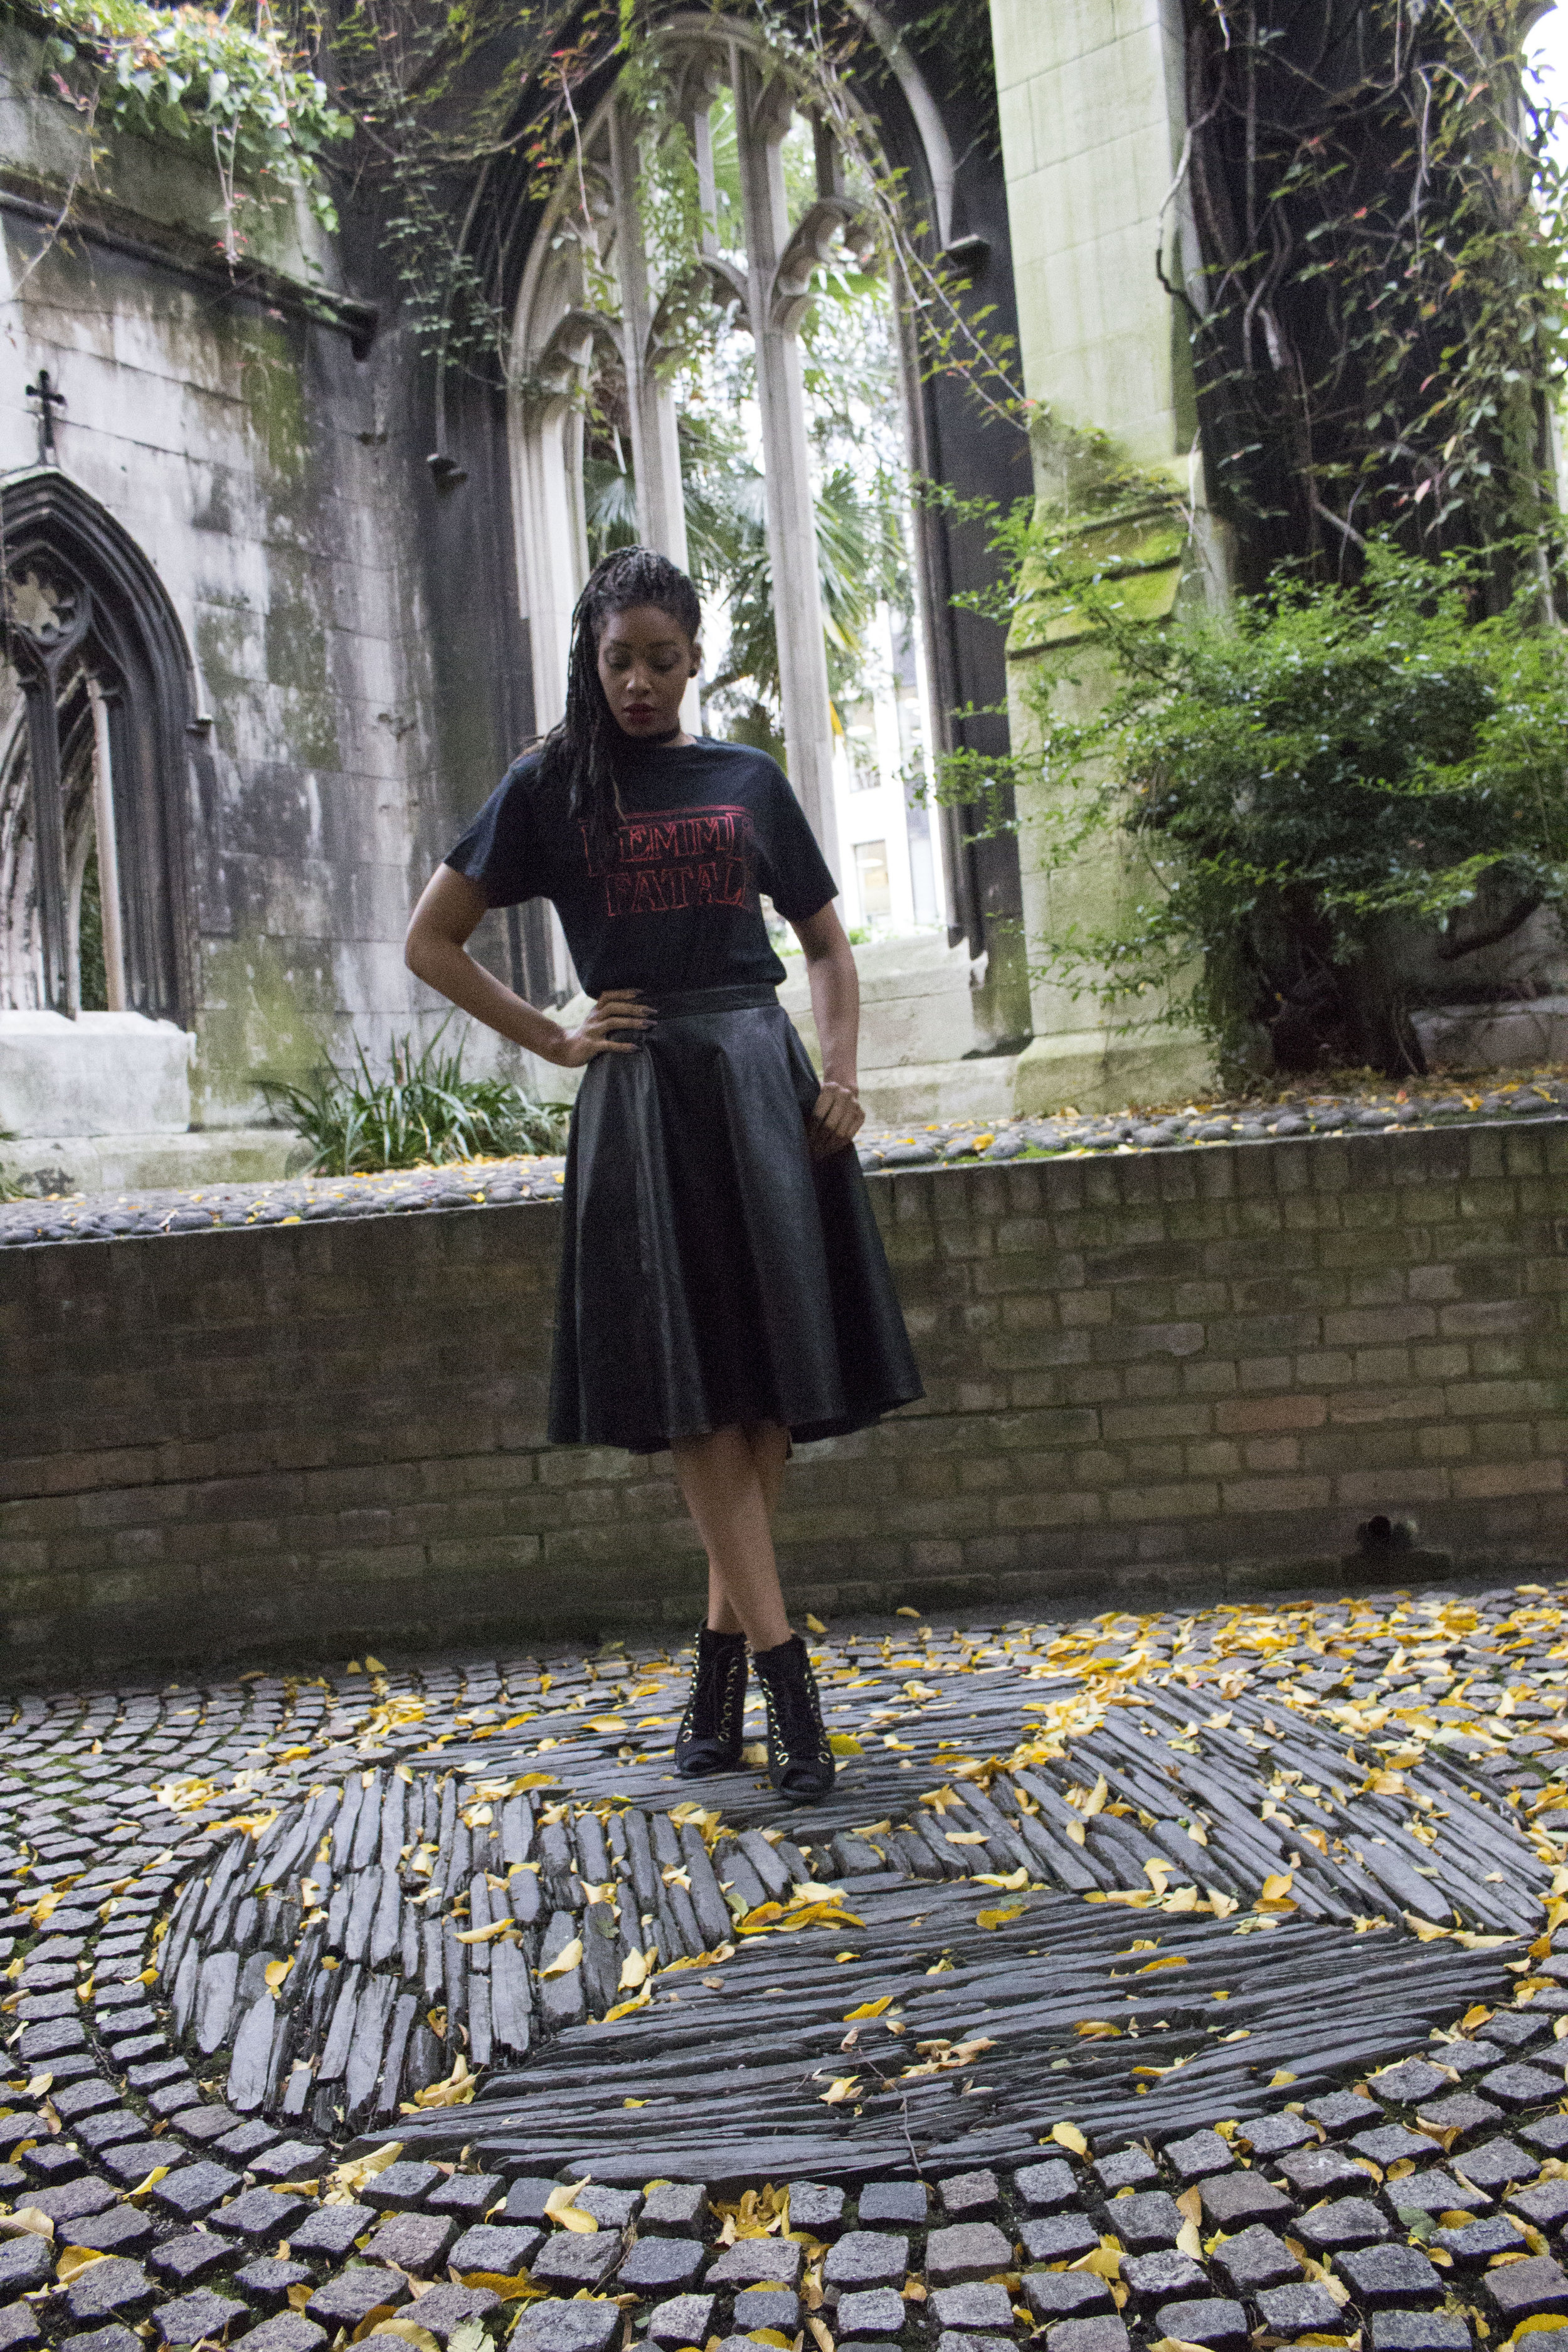 Black femme fatale t shirt black skirt black boots black choker for Autumn Winter 17.jpg